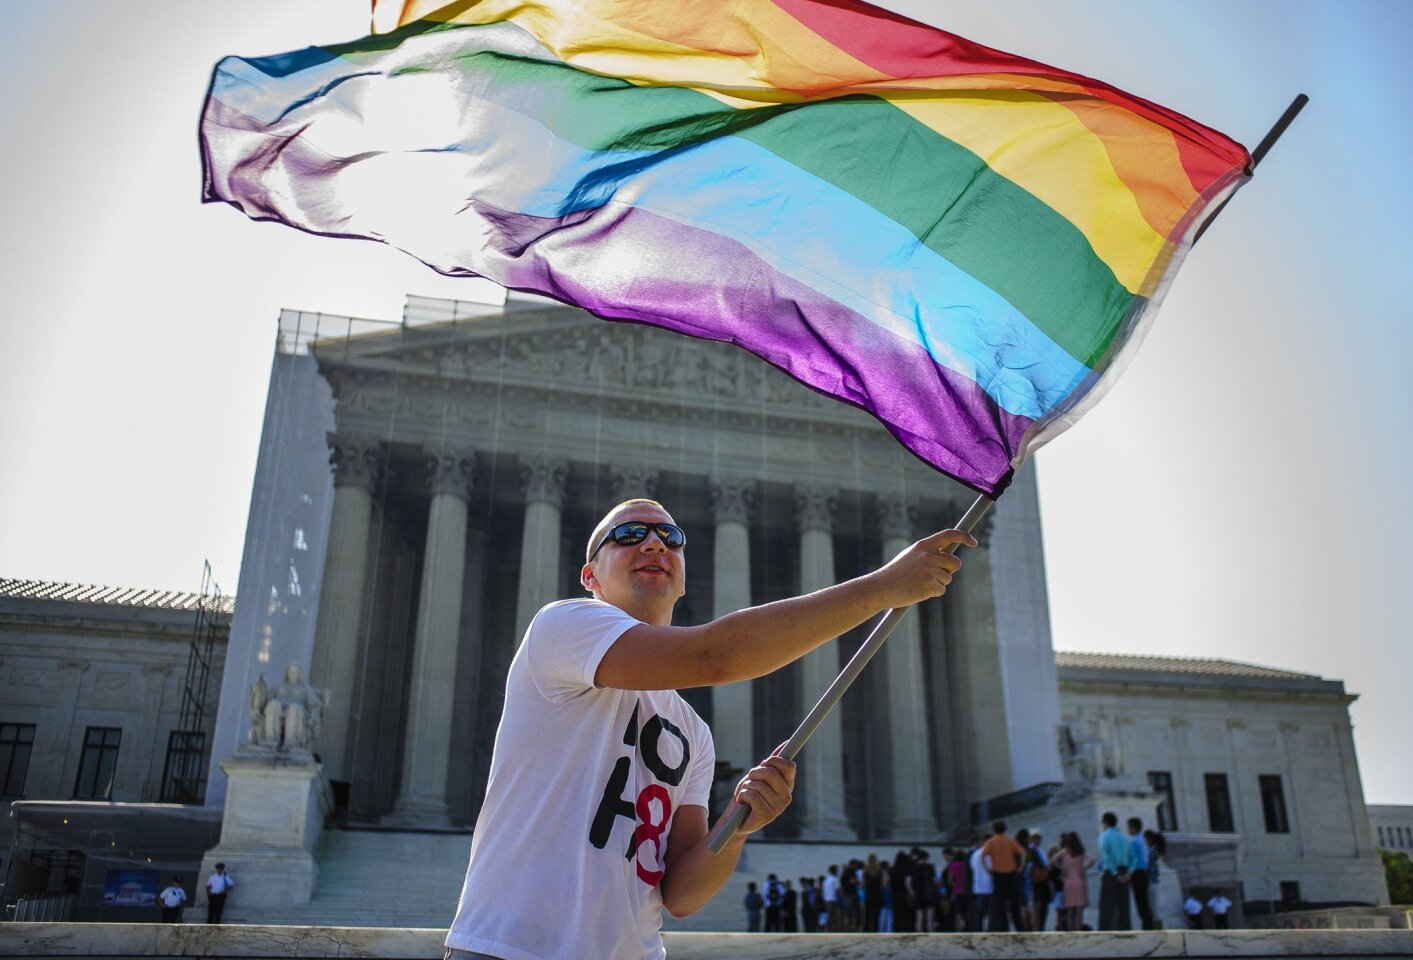 "In June, the court propelled same-sex marriage forward with a pair of rulings that are easier to praise for their result than for their legal reasoning. In U.S. vs. Windsor, the court struck down a section of the federal Defense of Marriage Act, which defined marriage for federal purposes as the union of a man and a woman. The court rightly recognized that the law was animated by a ""congressional desire to harm a politically unpopular group."" On the same day that it invalidated DOMA, the court ruled that supporters of California's Proposition 8 banning same-sex marriage lacked standing to appeal a federal judge's finding that the law was unconstitutional. Although the court sidestepped the merits, the decision set the stage for the resumption of same-sex marriage in the state. Above: A same-sex marriage supporter in front of the Supreme Court. RELATED: Ted Rall's five best cartoons of 2013 Washington's 5 biggest 'fails' of 2013 10 groundbreaking women we lost in 2013"